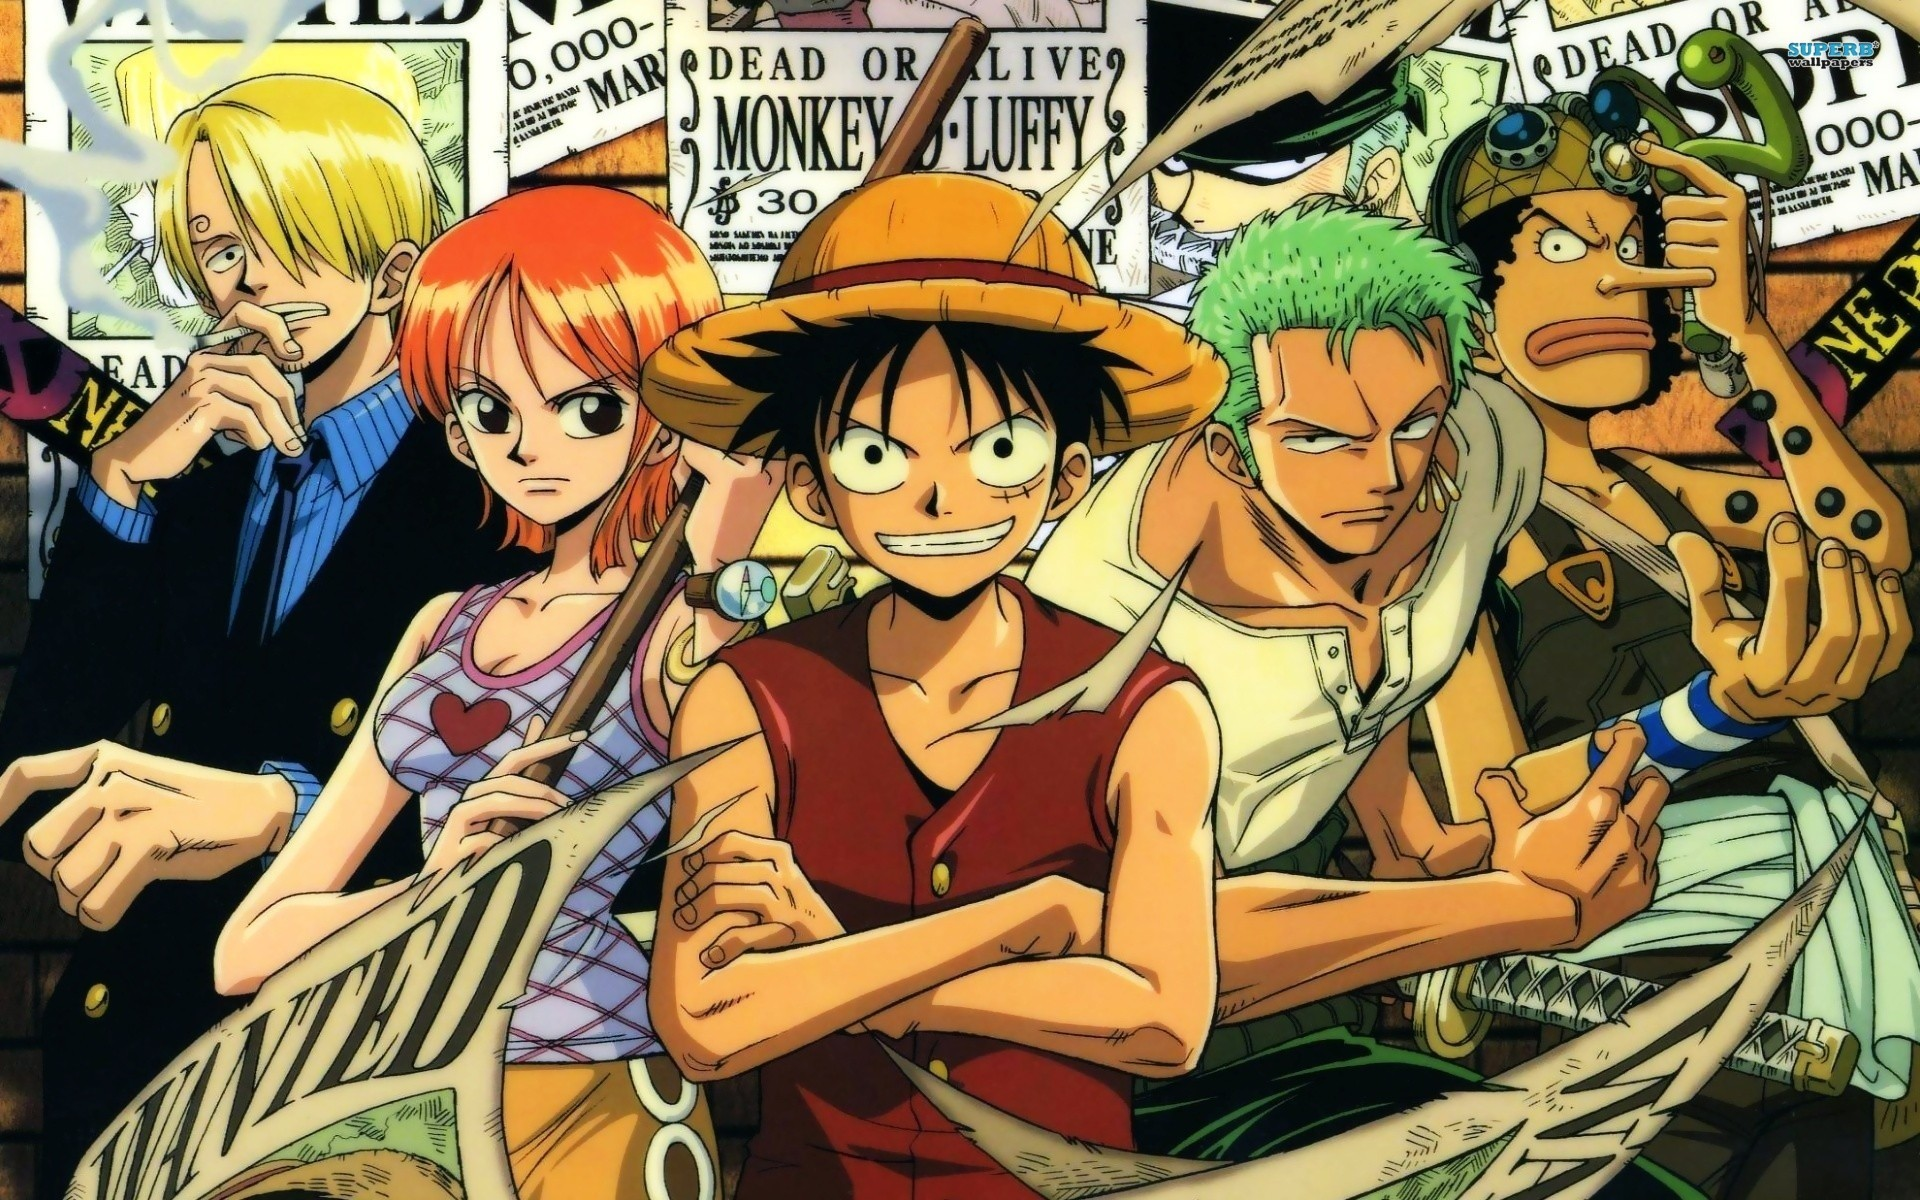 Res: 1920x1200, One Piece, Monkey D. Luffy, Nami, Roronoa Zoro, Usopp, Sanji, Anime  Wallpapers HD / Desktop and Mobile Backgrounds